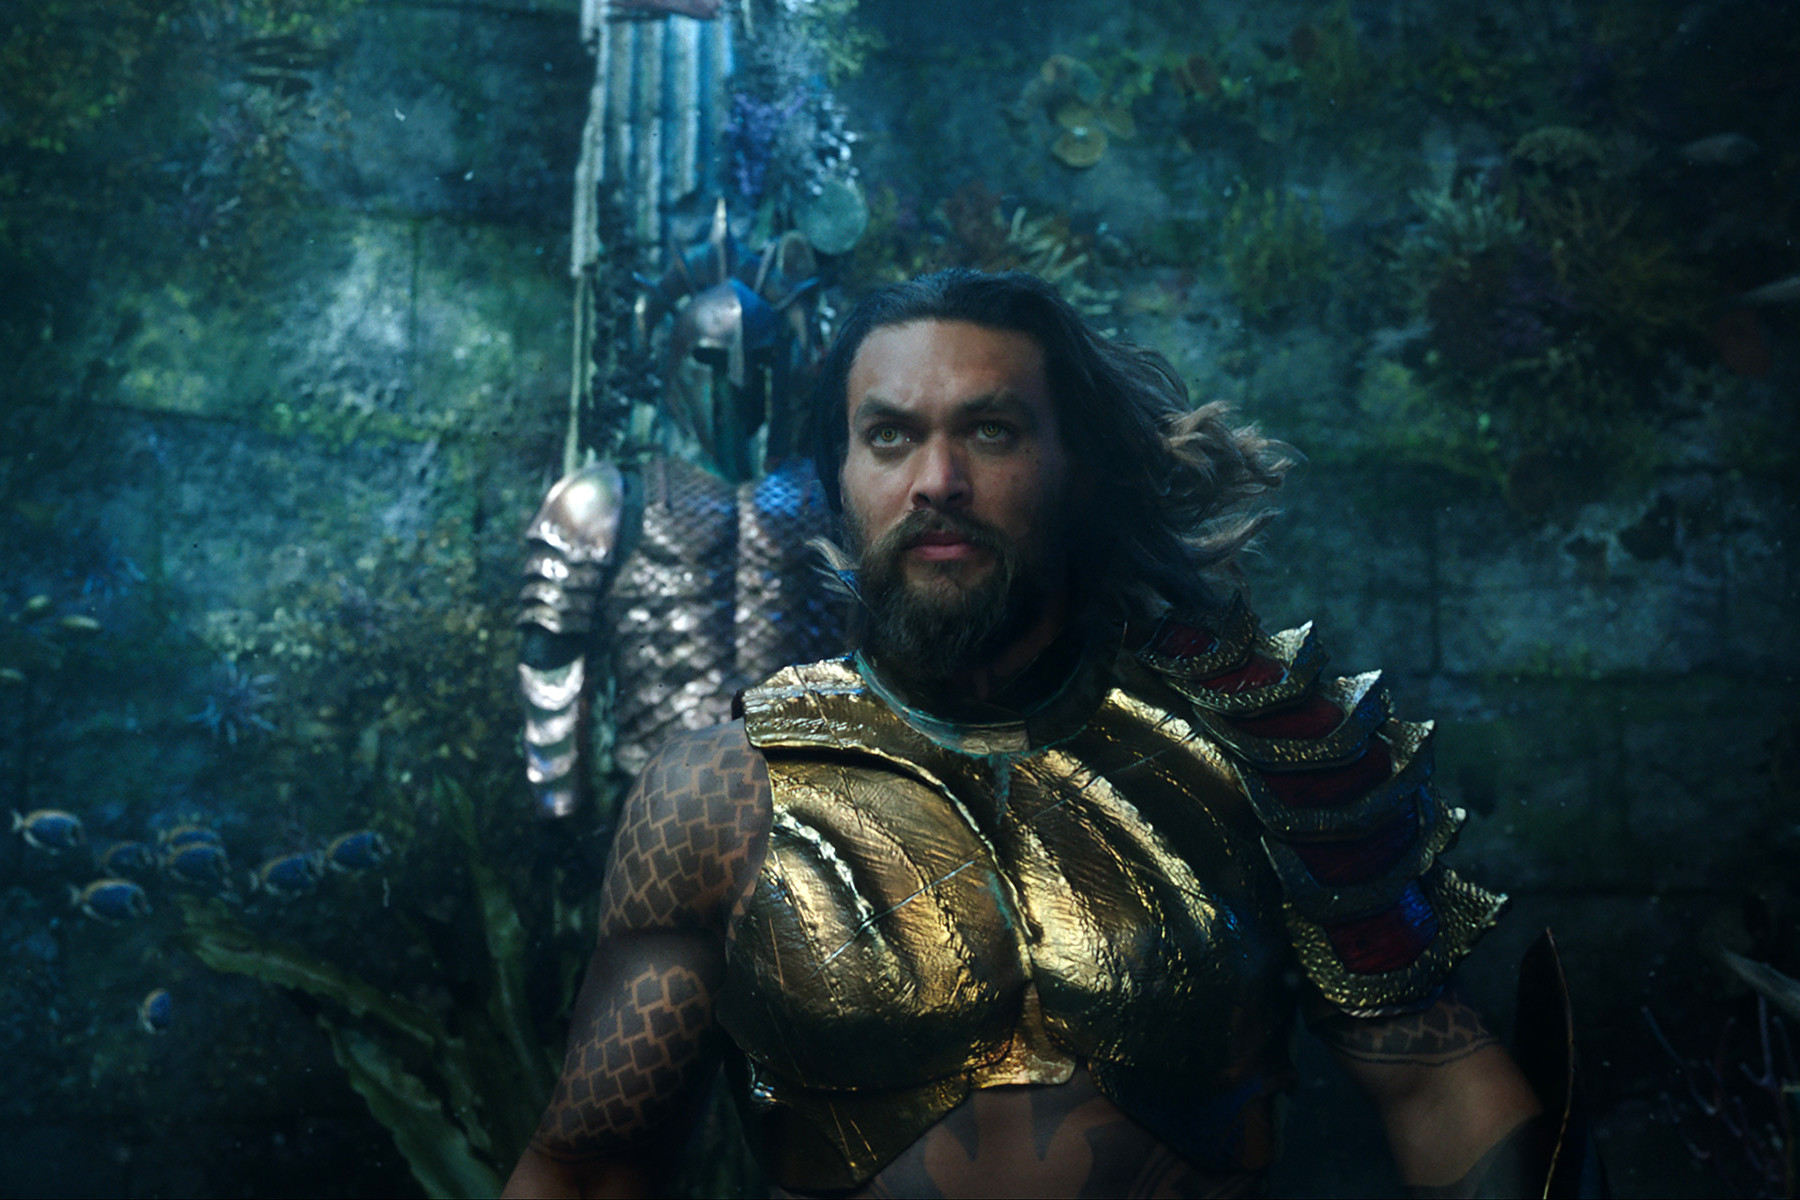 'Aquaman' Dives Deep into Atlantis but Forgets Plot